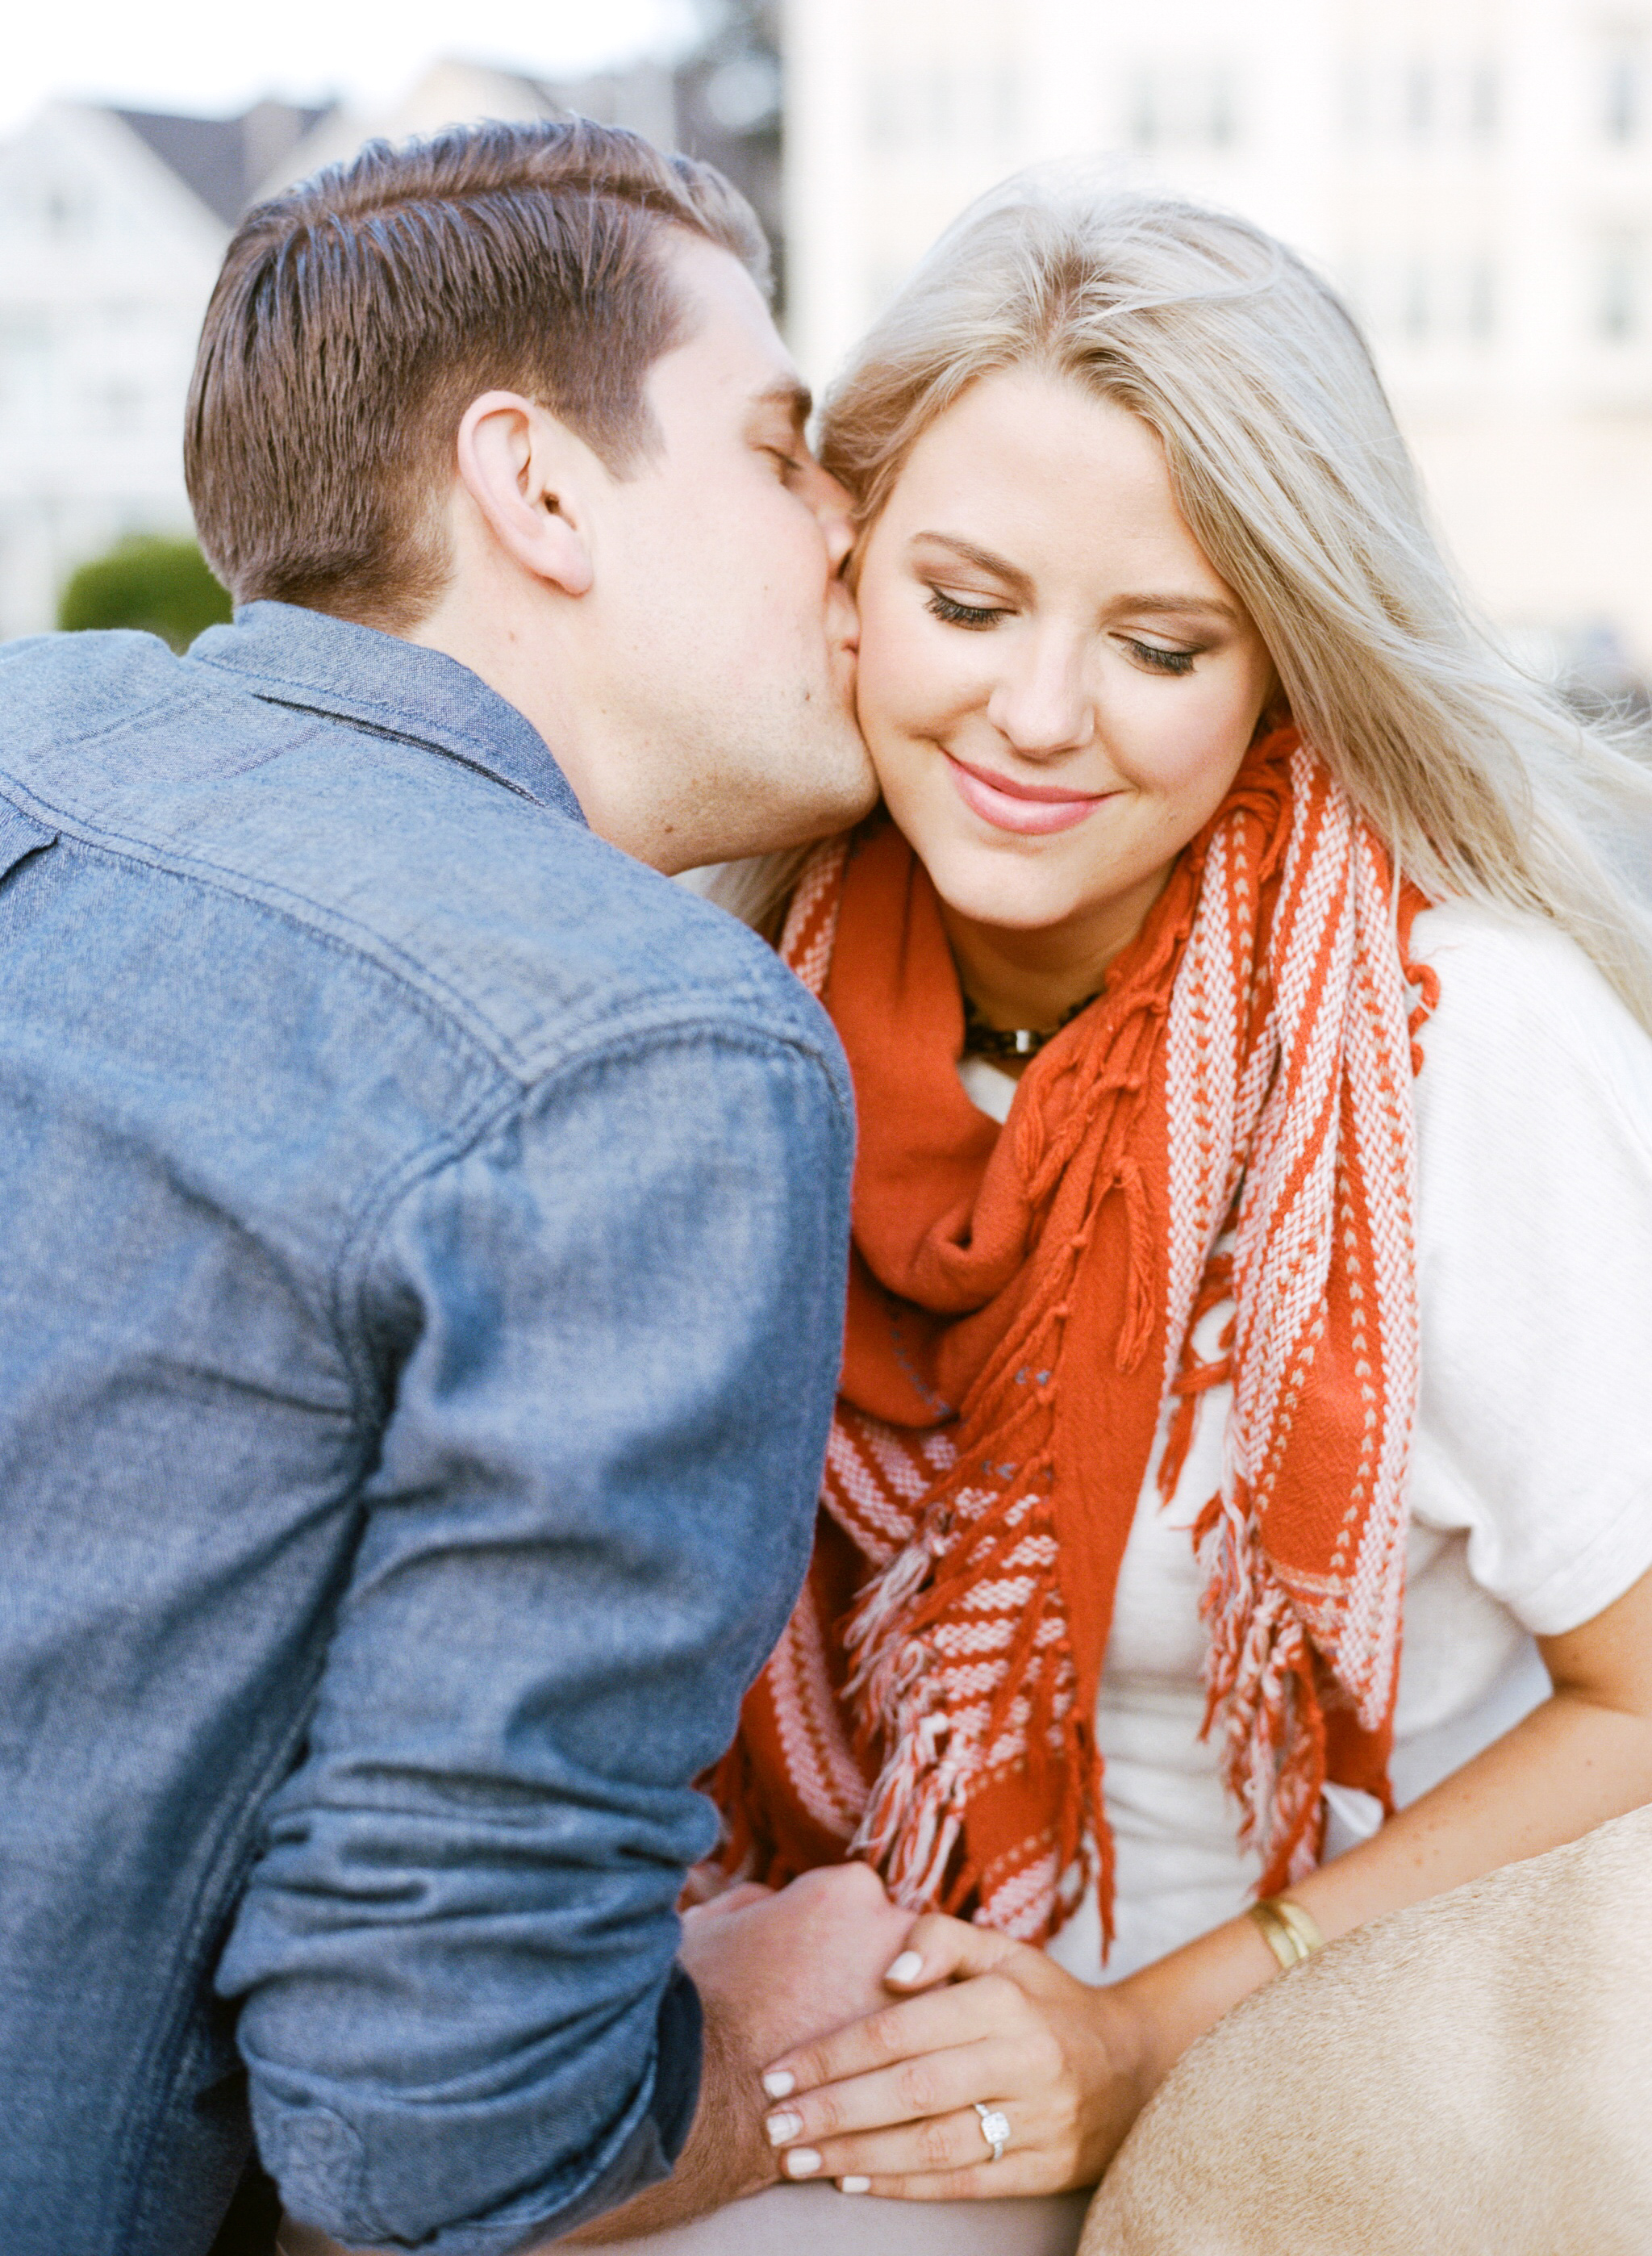 A groom-to-be kisses his fiancee on the grass at Alamo Square Park during an engagement shoot with Sylvie Gil.